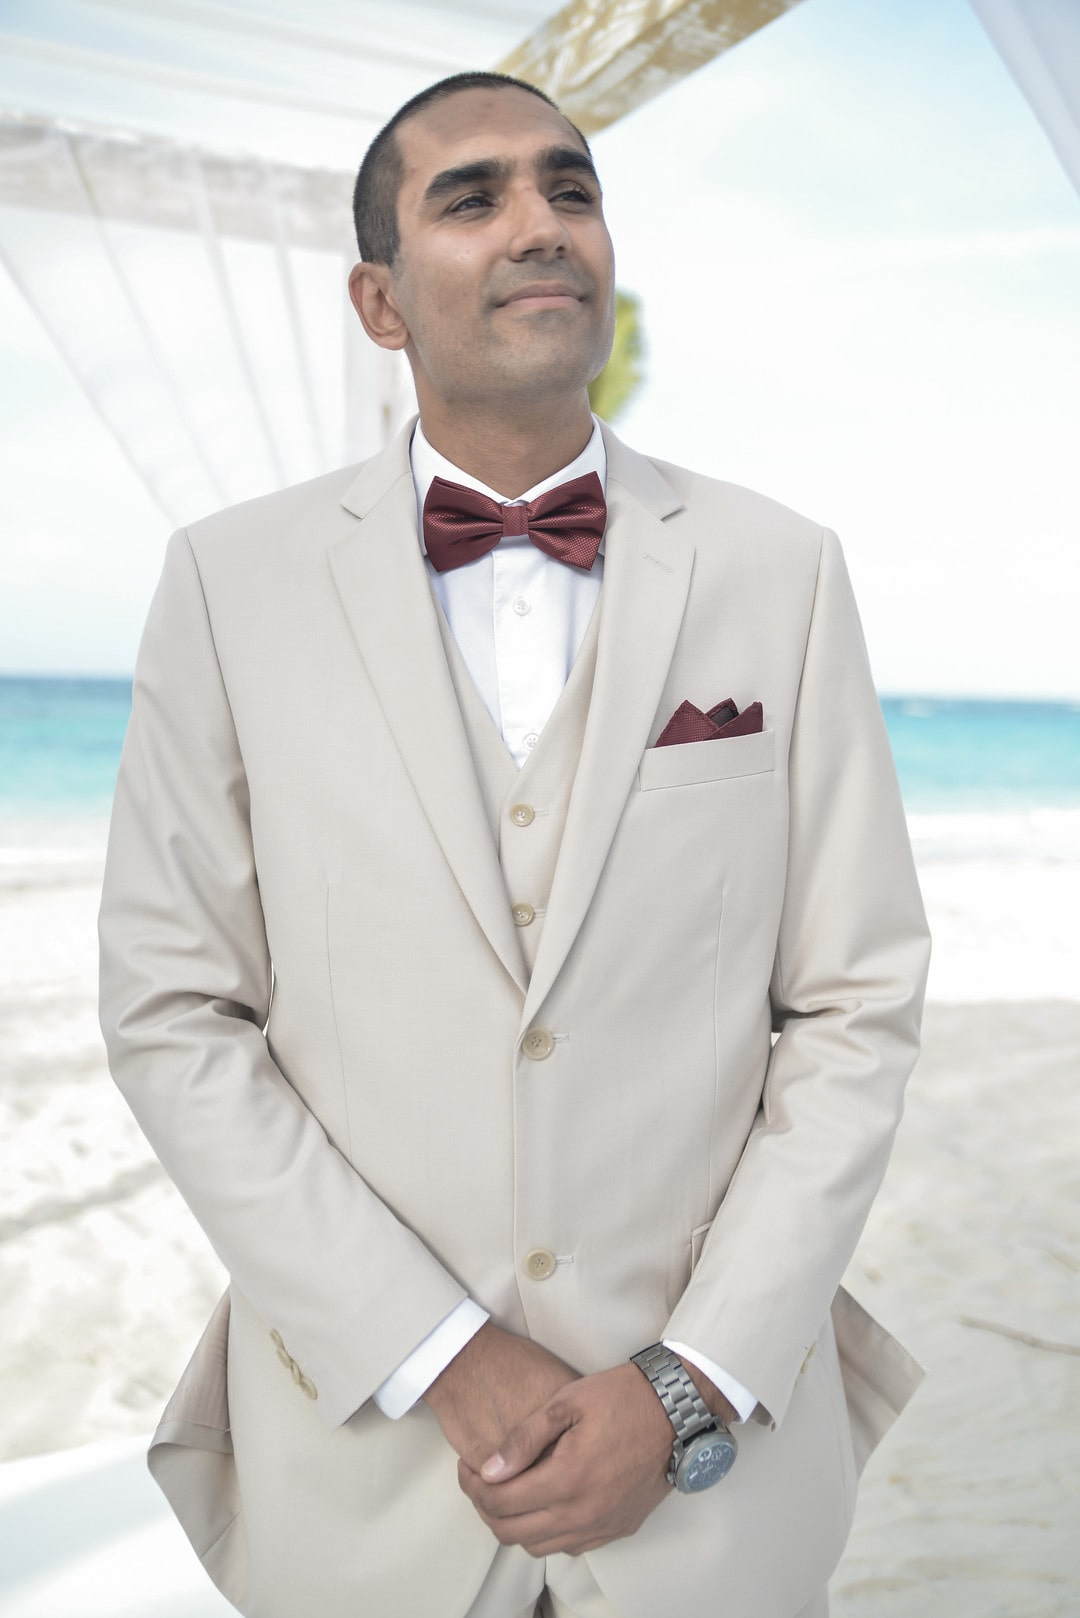 Katherine & Kyle's Destination Wedding In Kukua Punta Cana, Dominican Republic, Photography by Milan Photo Cine Art for Destination Wedding network Adriana Weddings